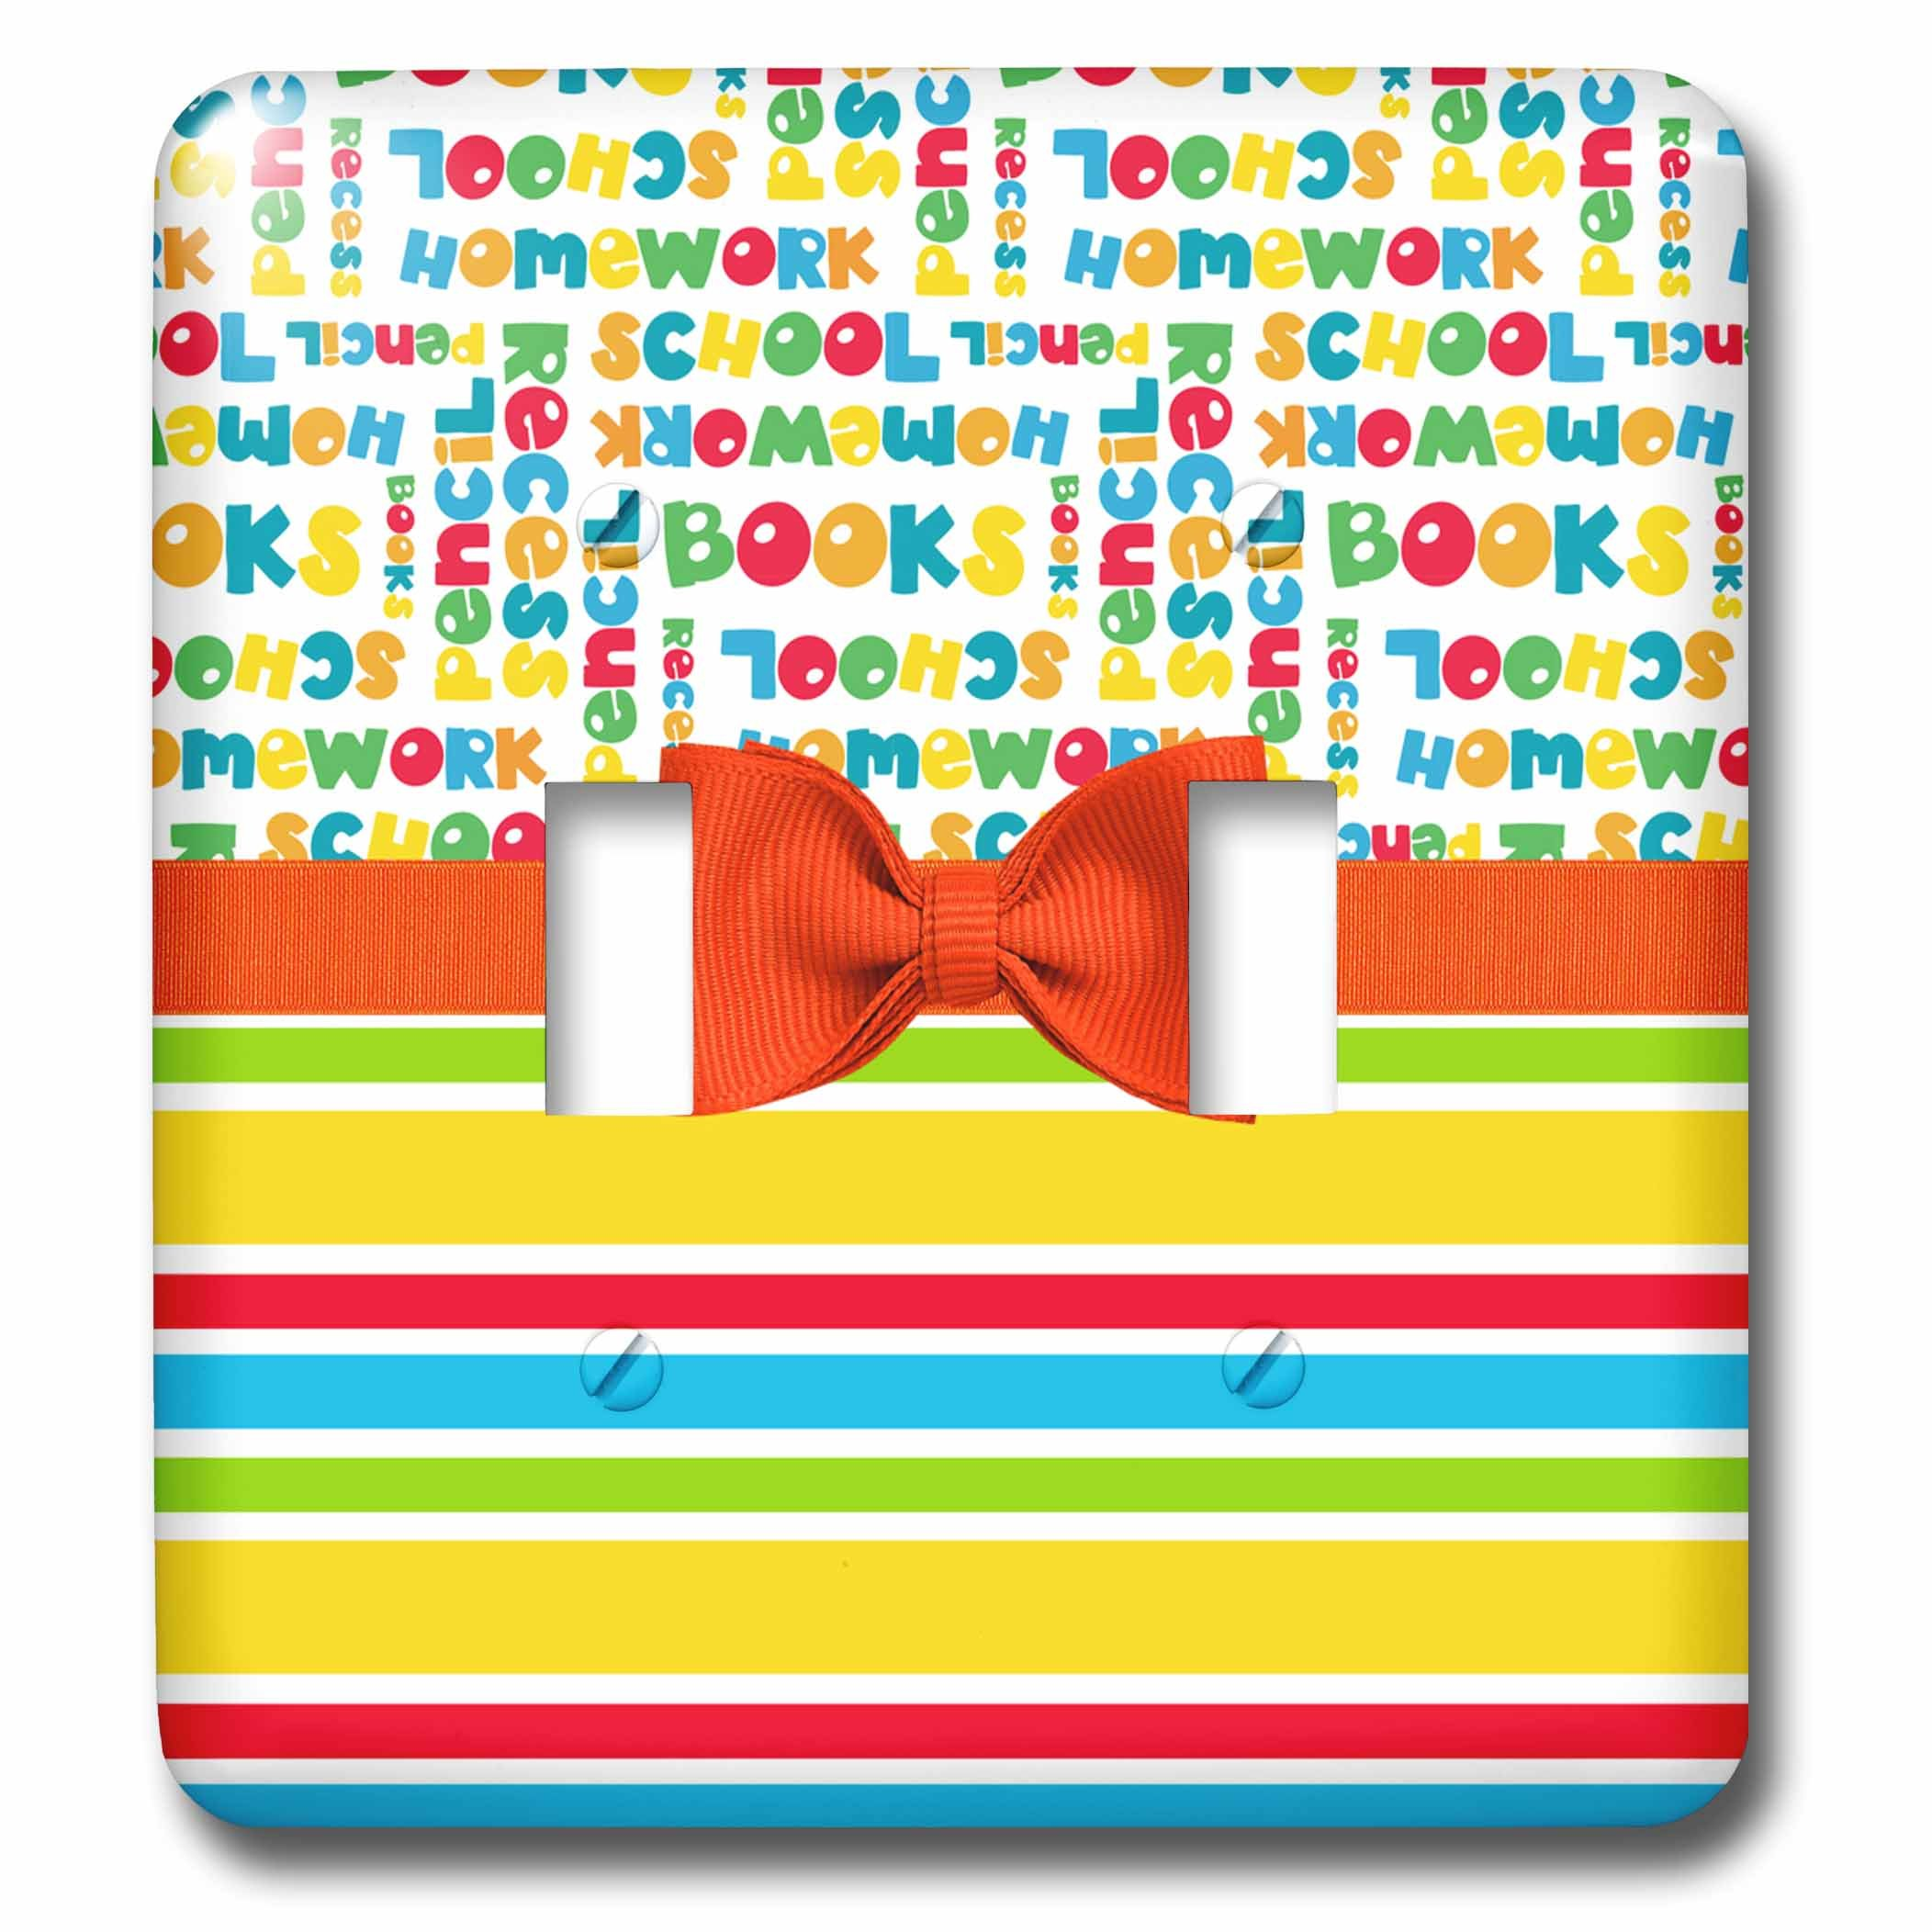 3dRose Anne Marie Baugh - Designs - Cute Primary Colors School Words Over Stripes With Digital Bow - Light Switch Covers - double toggle switch (lsp_282891_2)